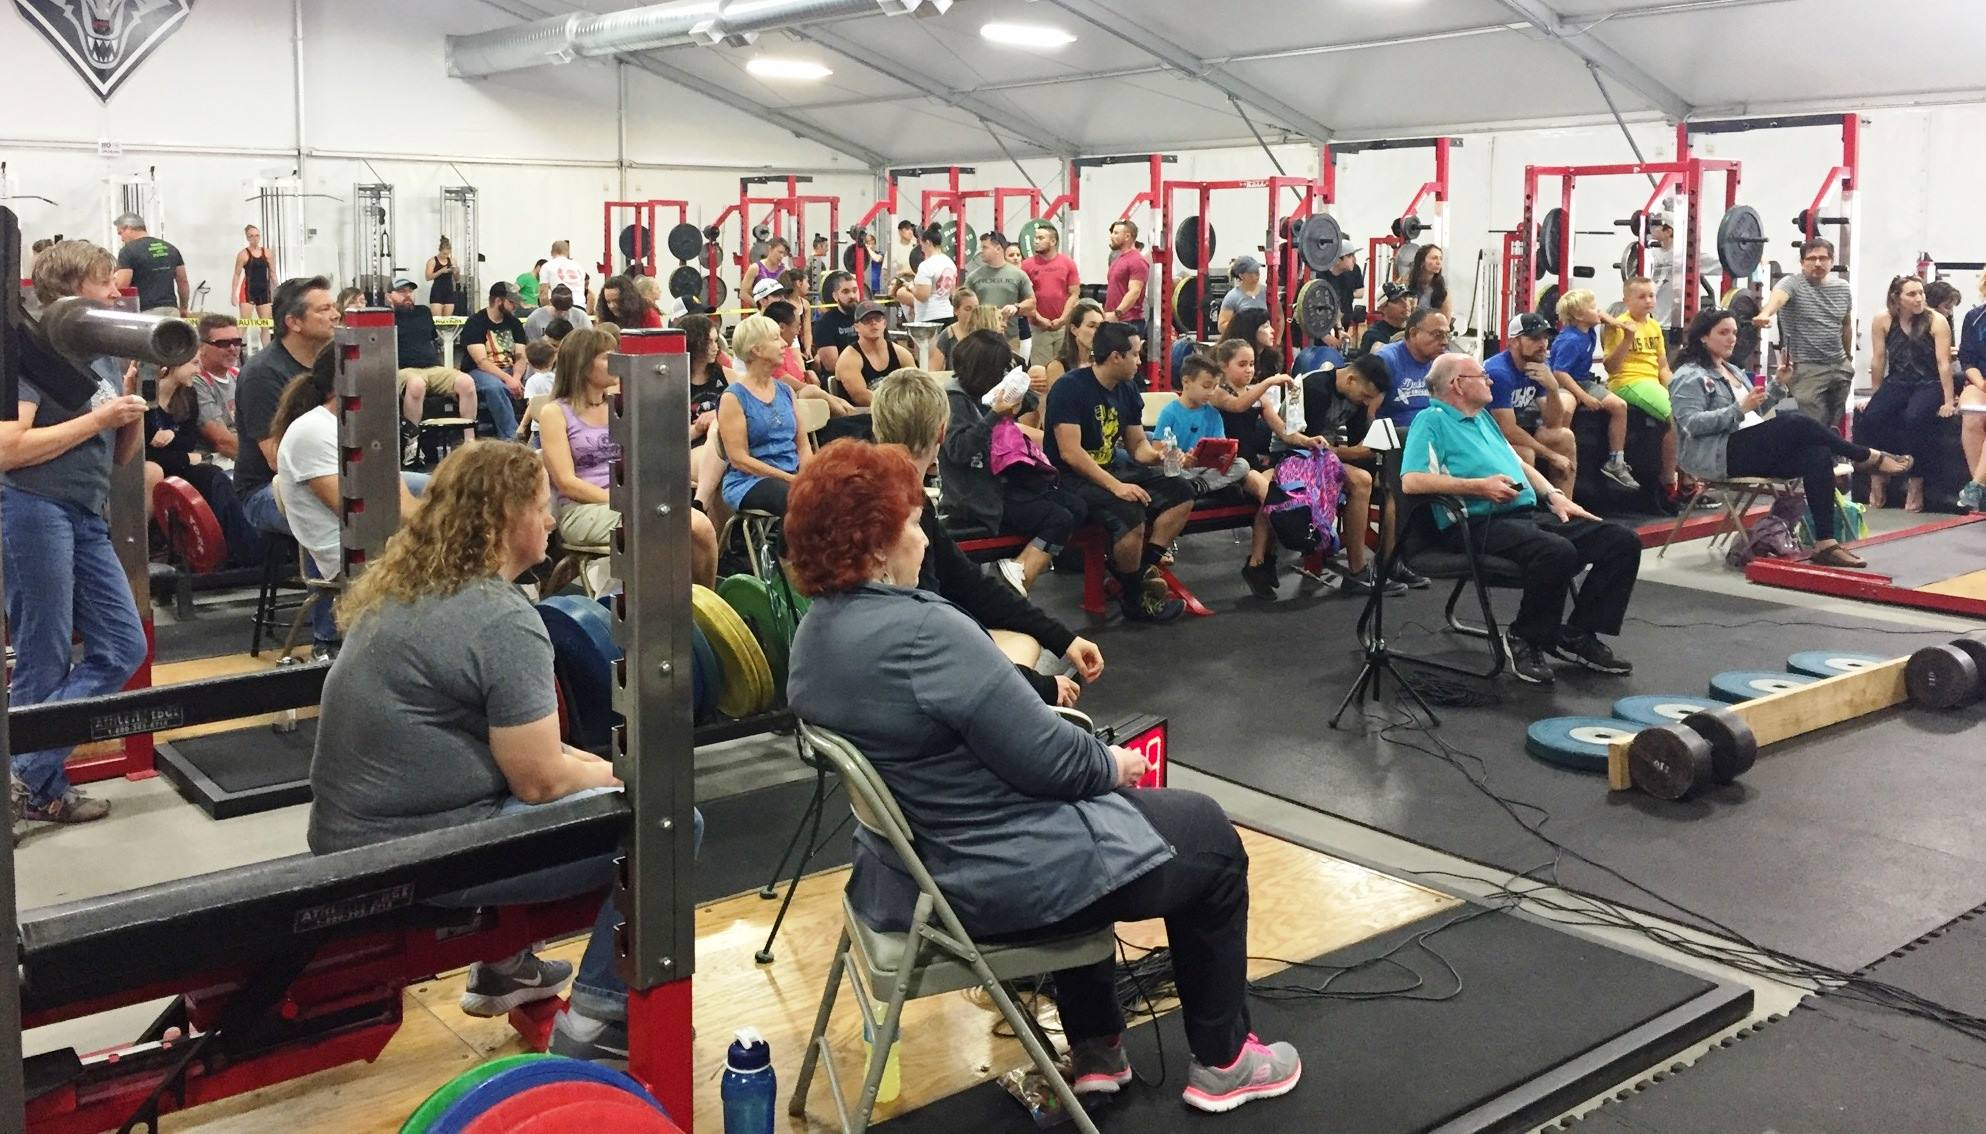 A GREAT TURNOUT FOR WEIGHTLIFTING